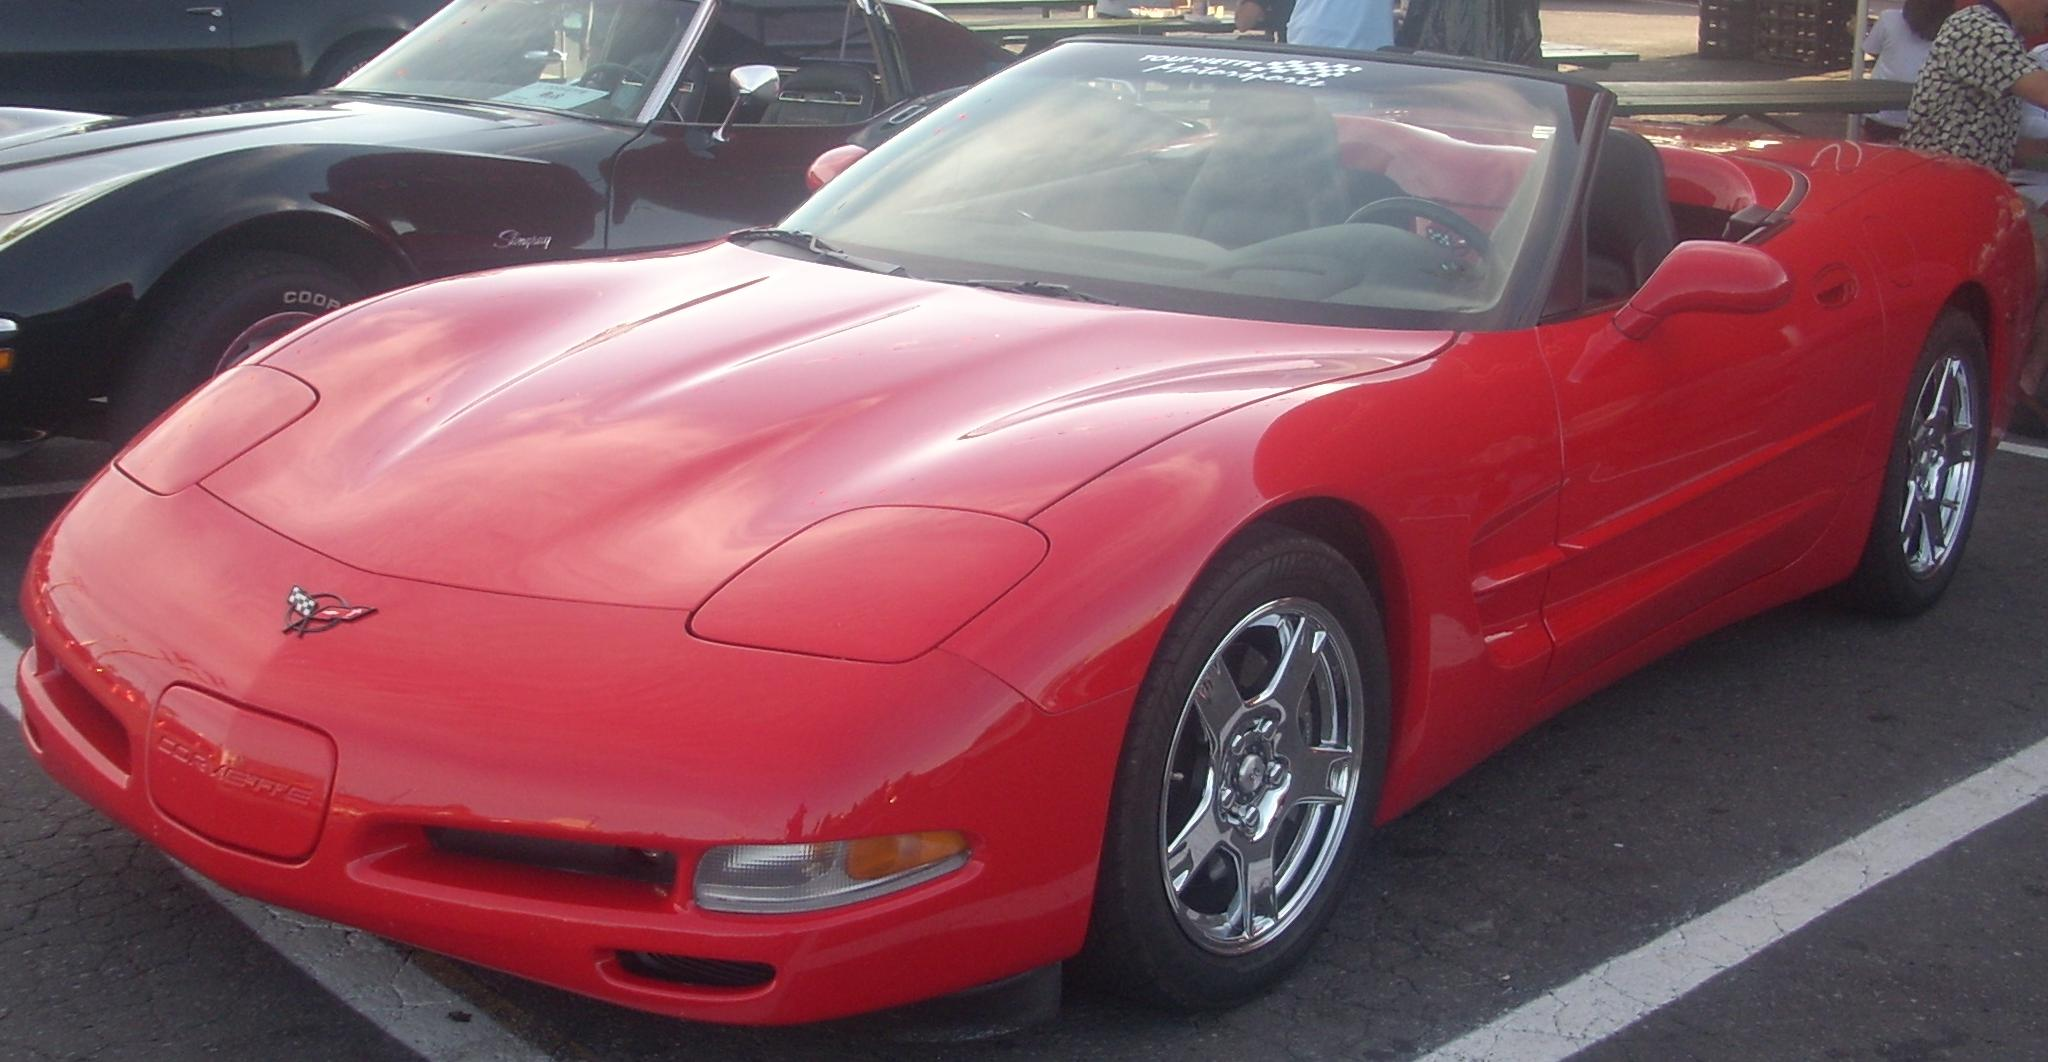 chevrolet corvette c5 coupe 2003 images